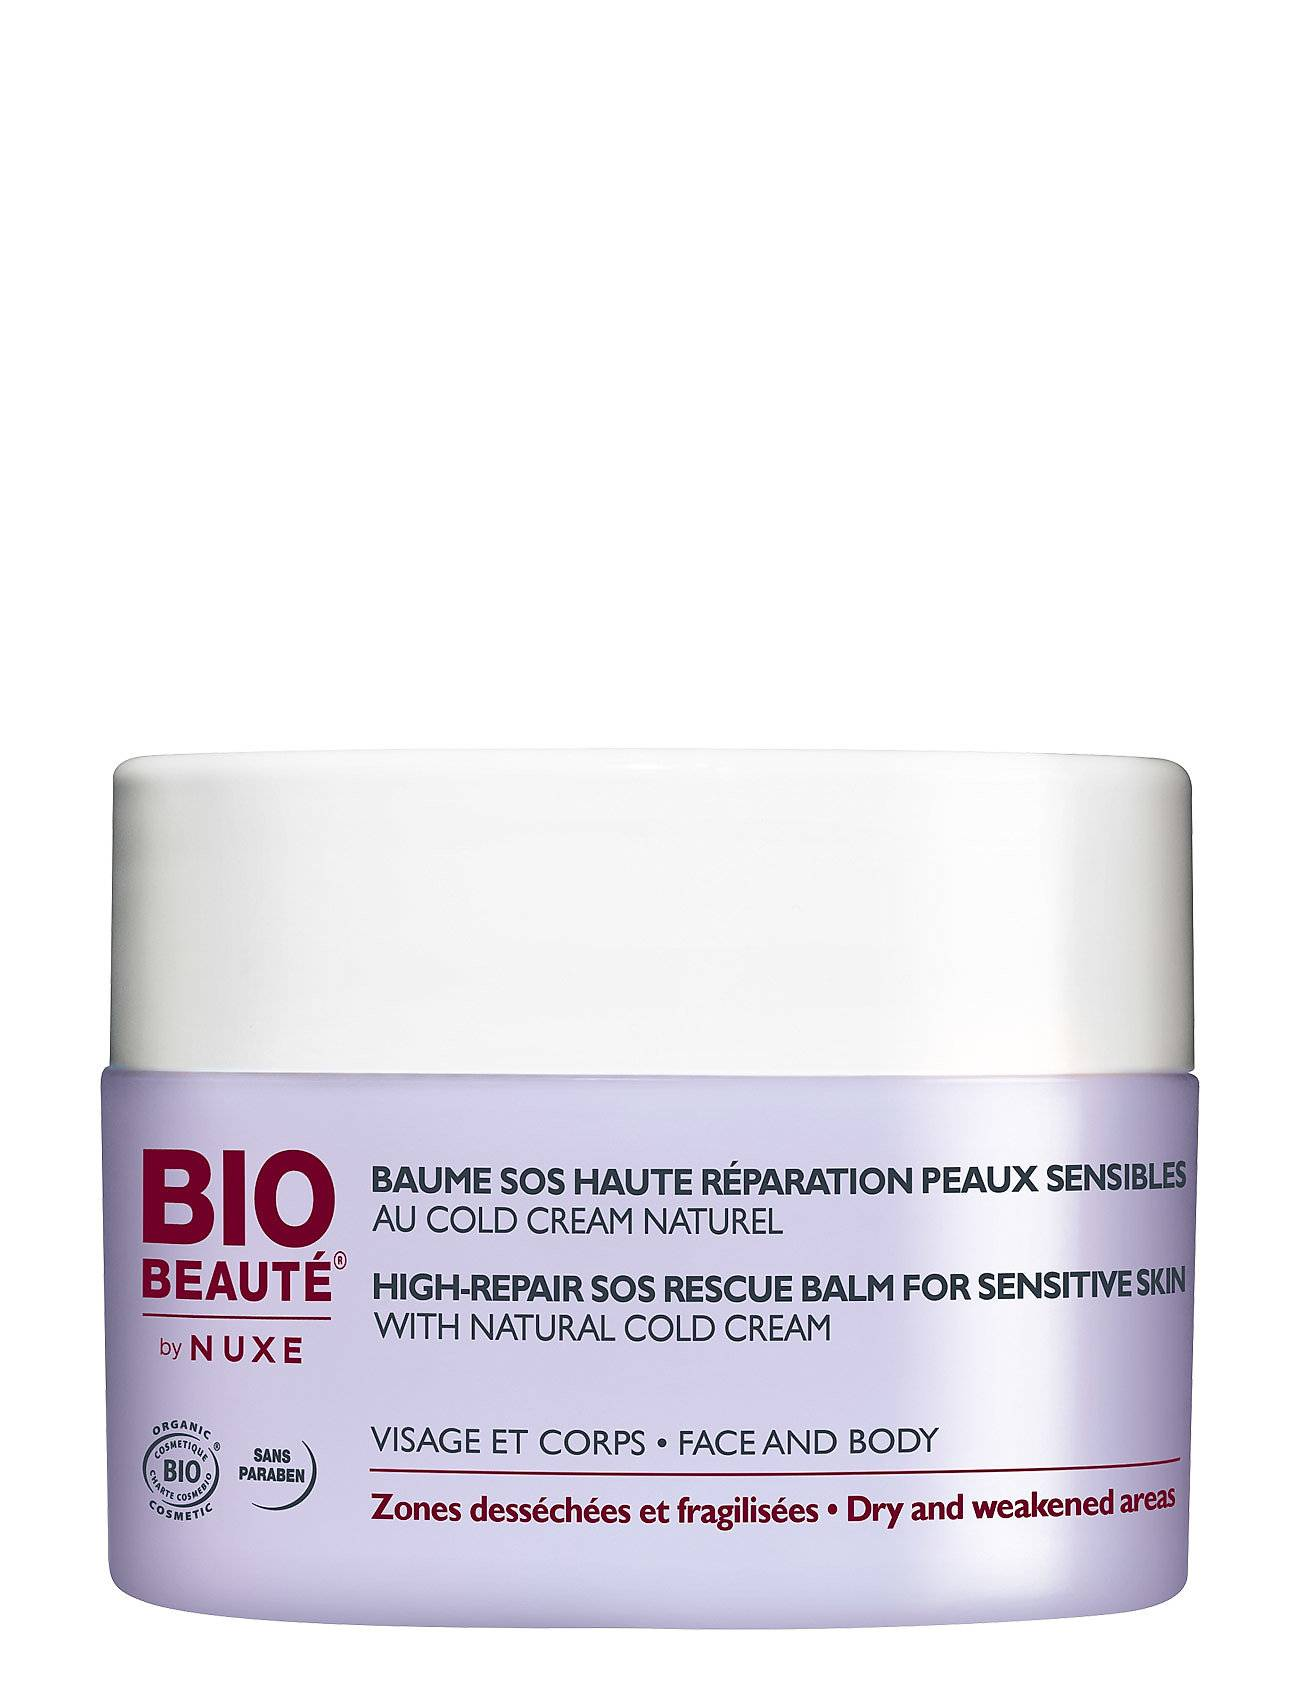 Bio-Beauté by NUXE High Repair Sos Balm Sensitive 50 Ml